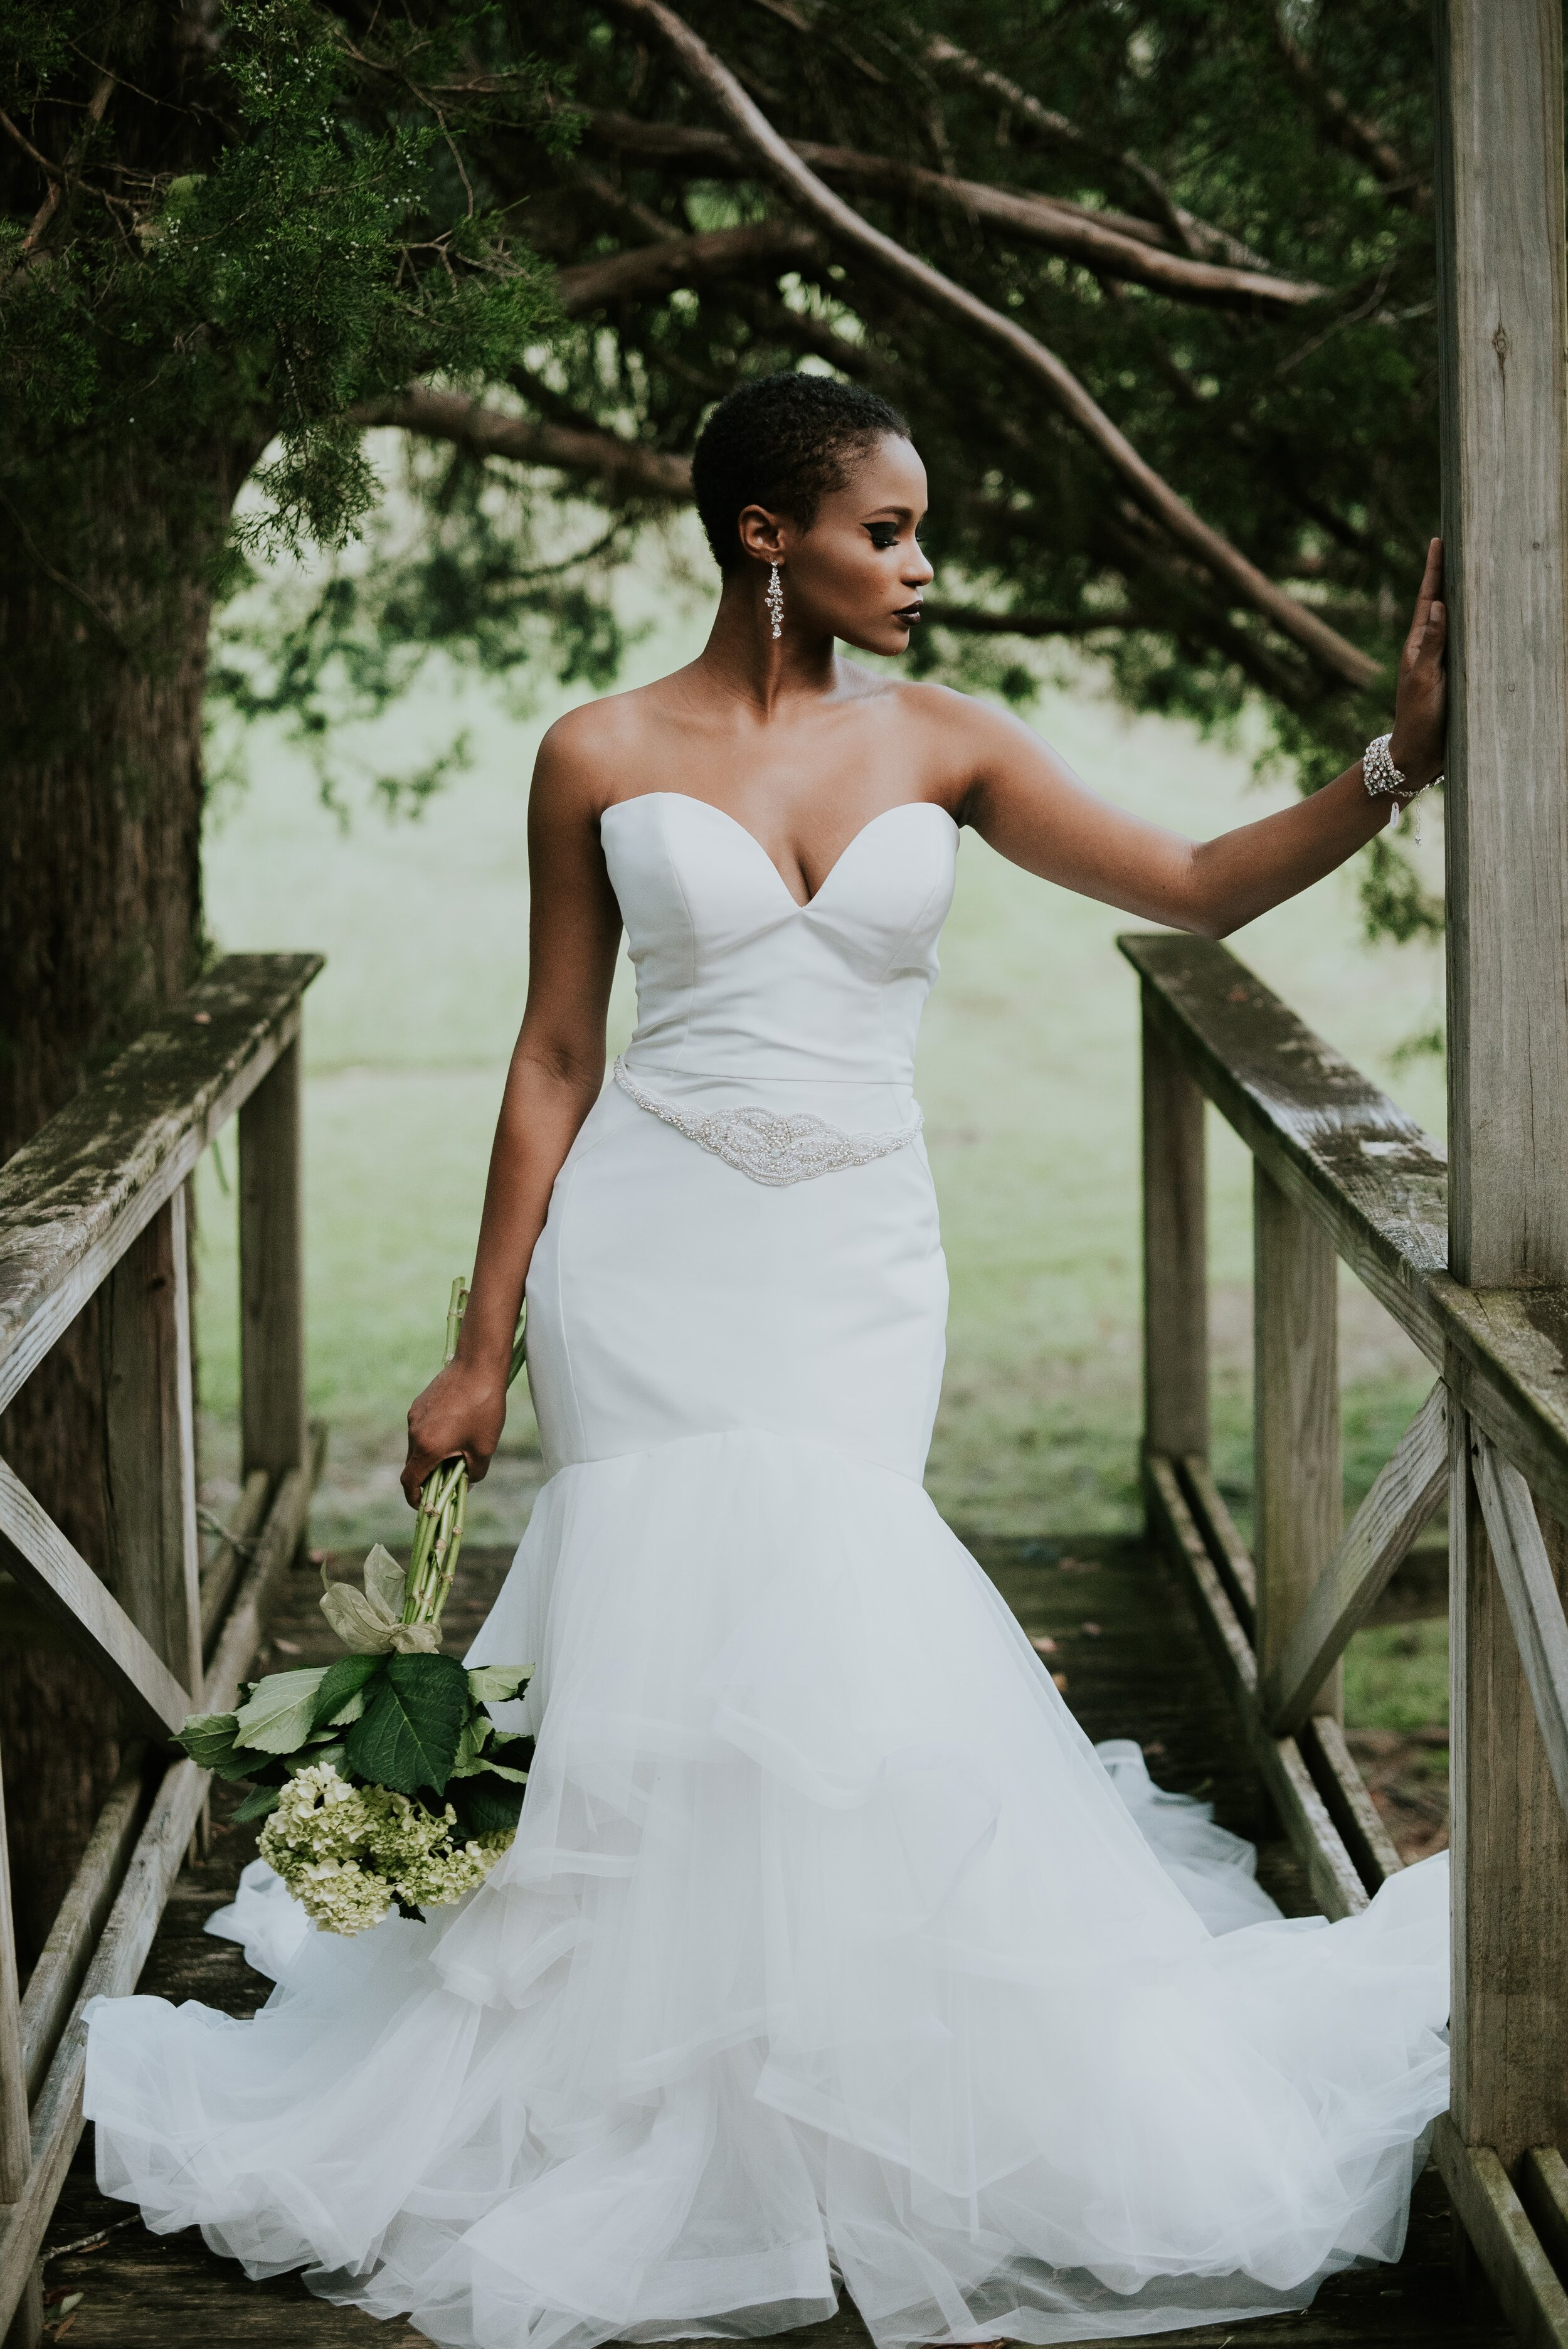 Bridal jewelry and wedding dress in North West Arkansas